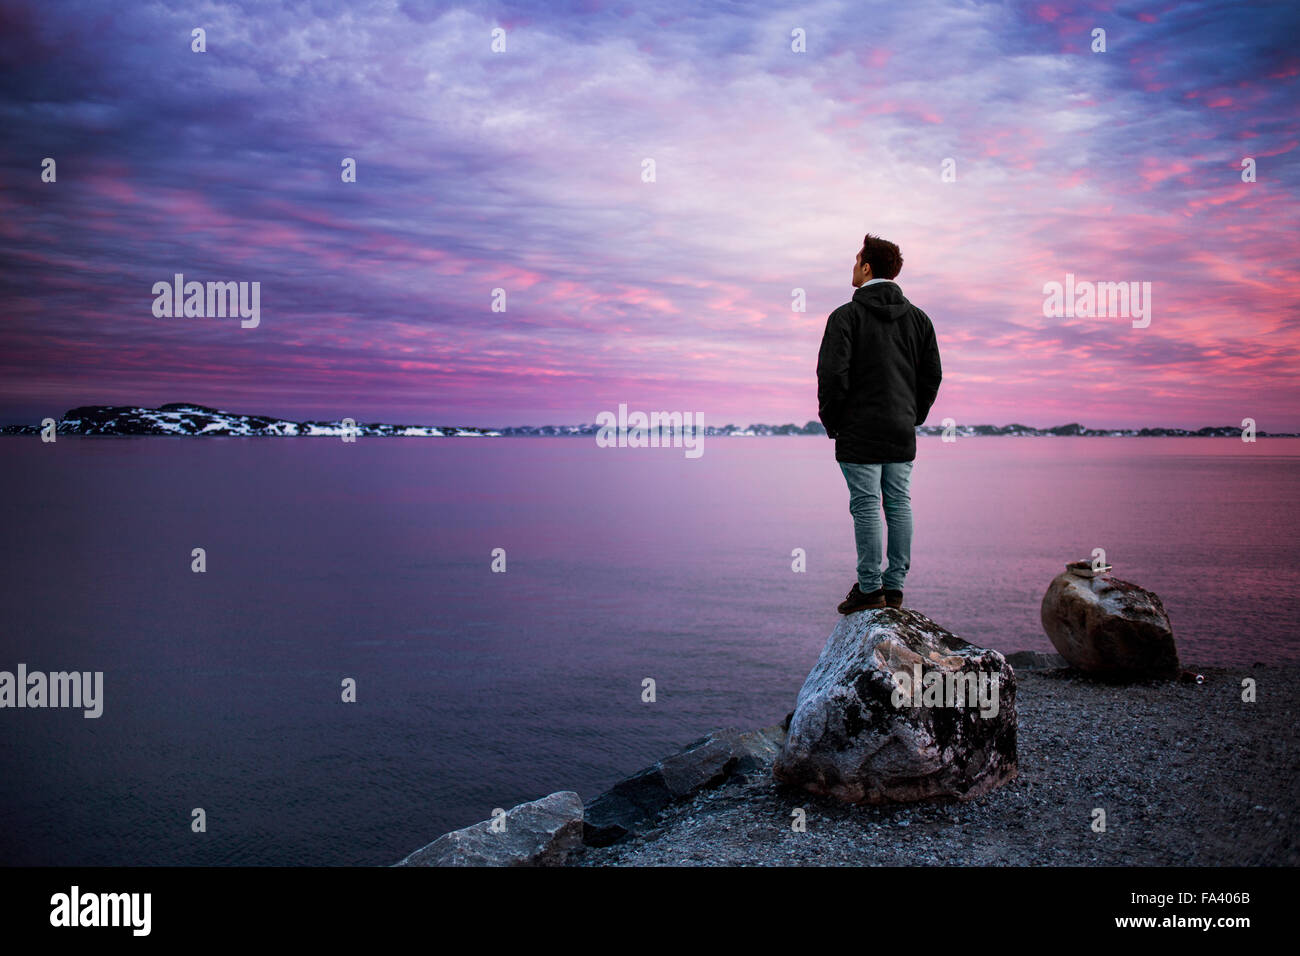 Full length rear view of man standing on rock overlooking sea during sunset - Stock Image